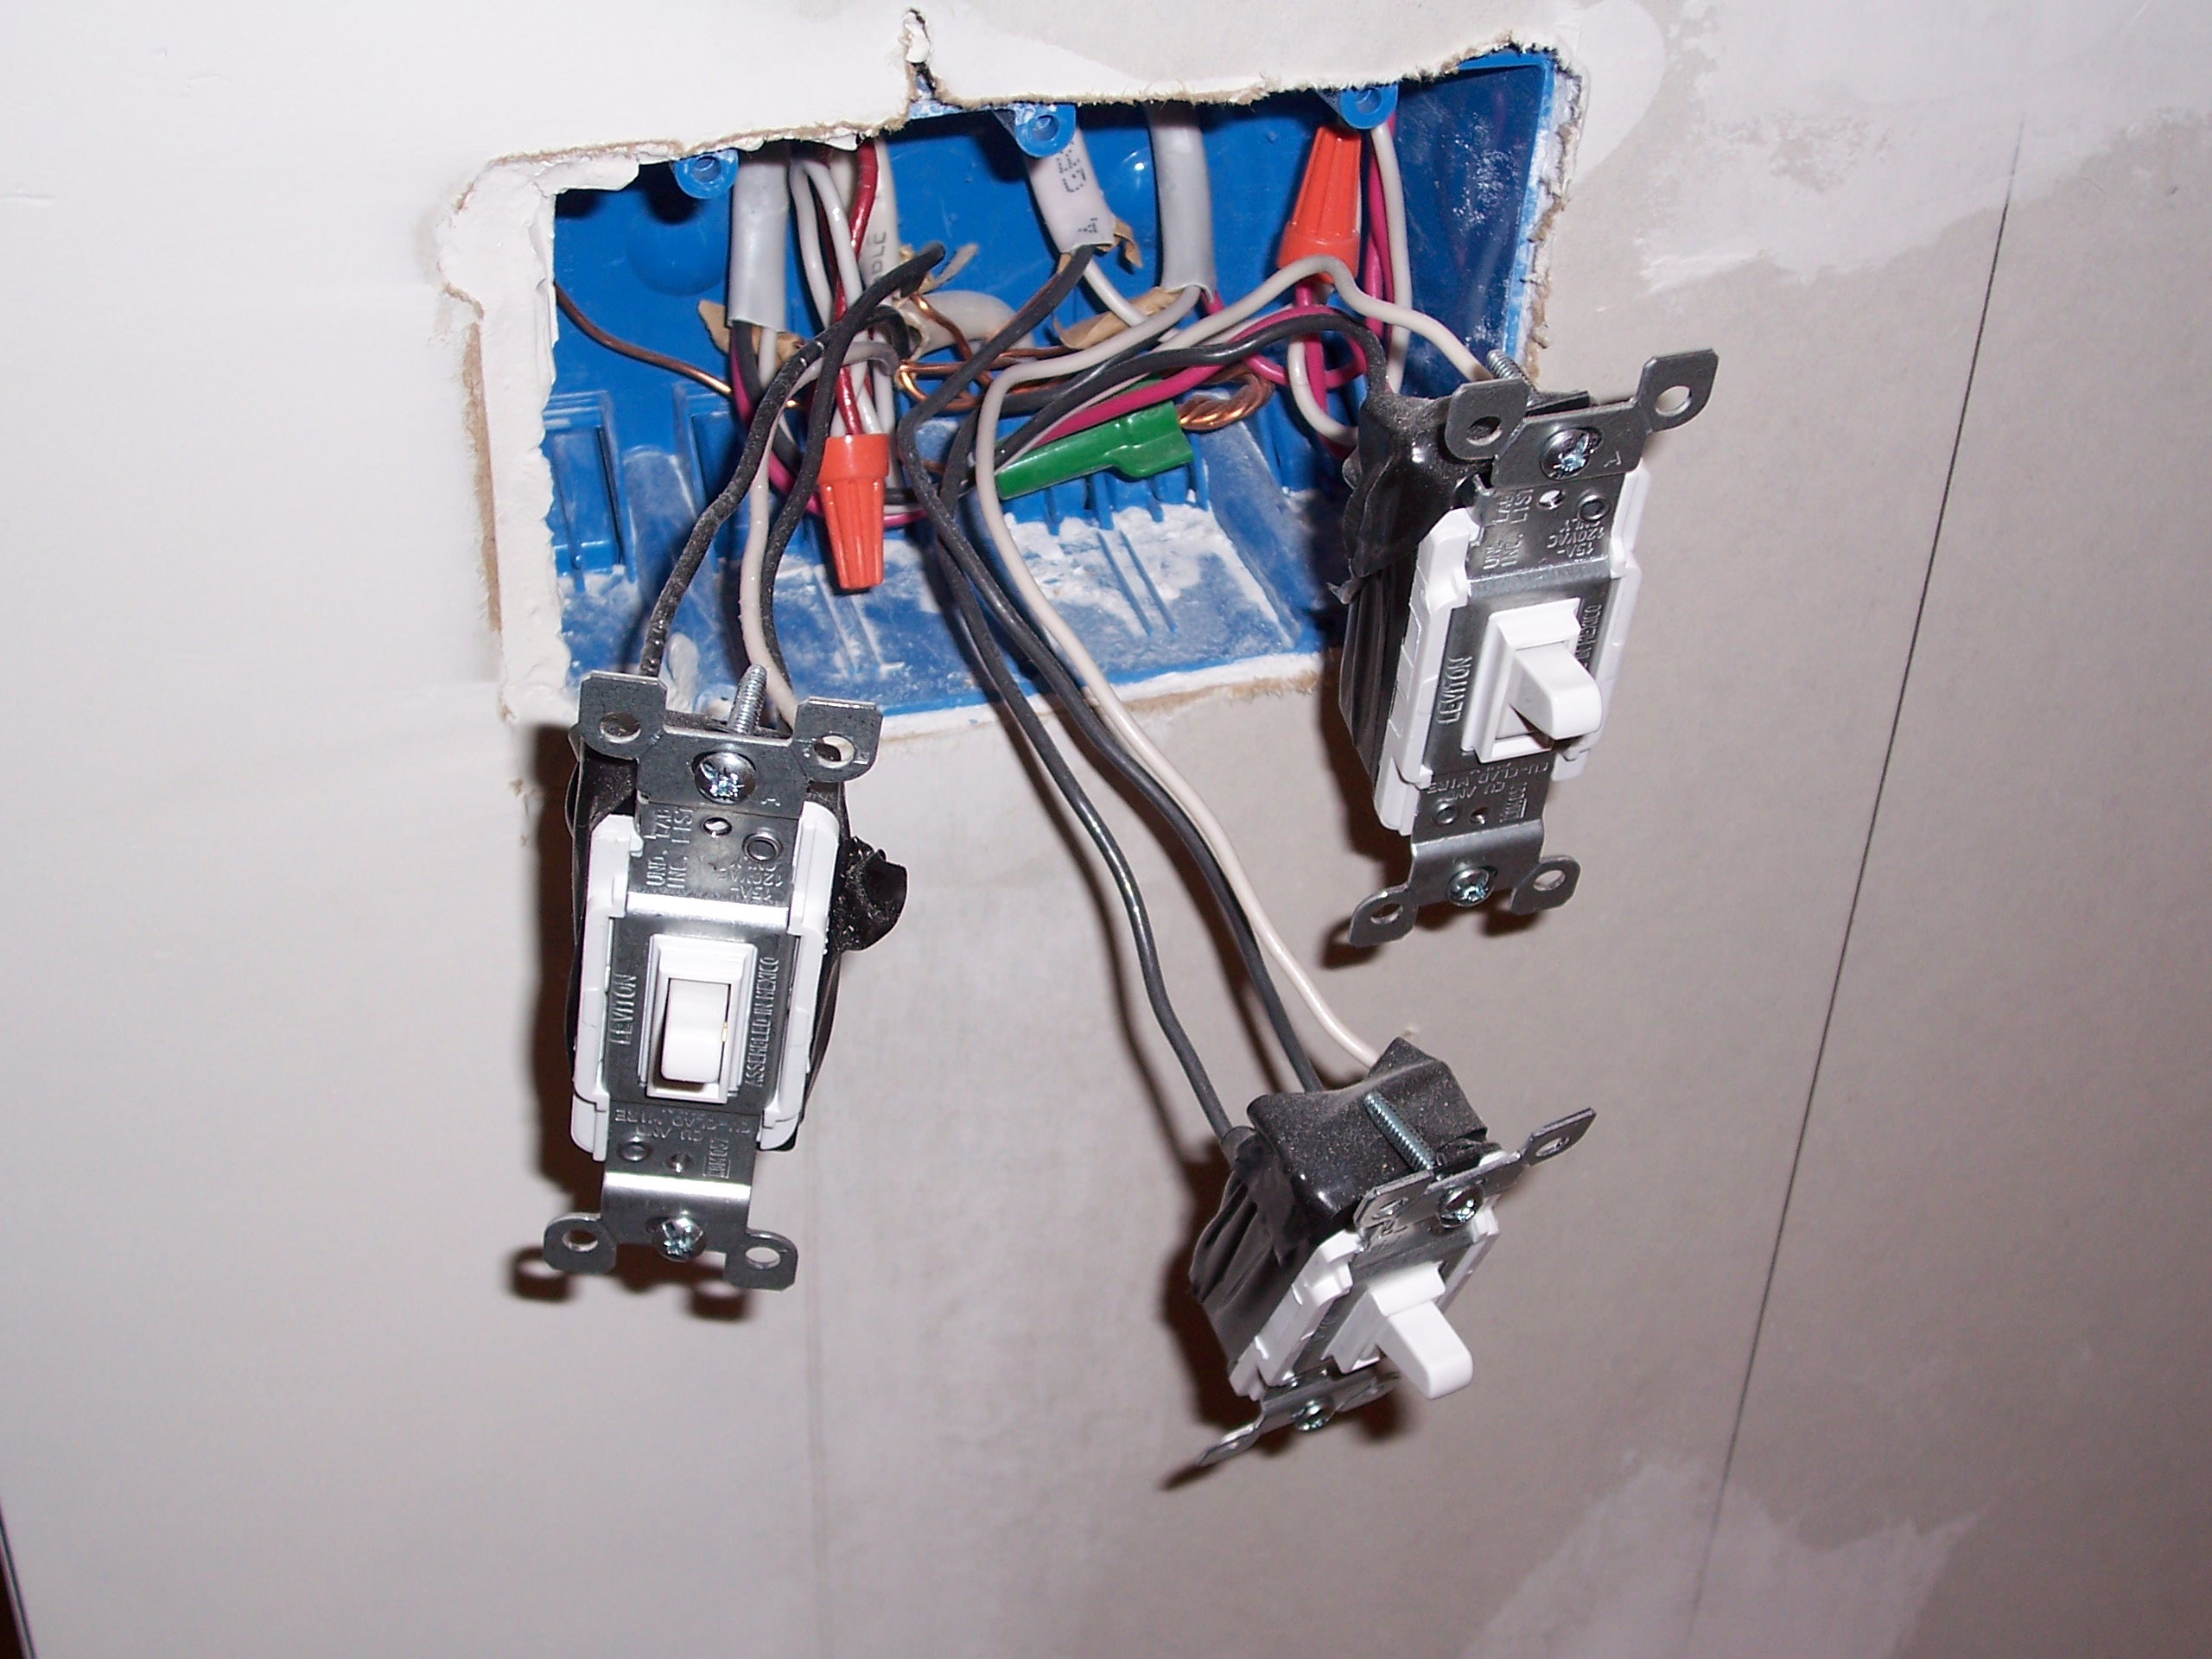 Light Switch Wiring Diagram Together With Ceiling Fan Wiring Diagram